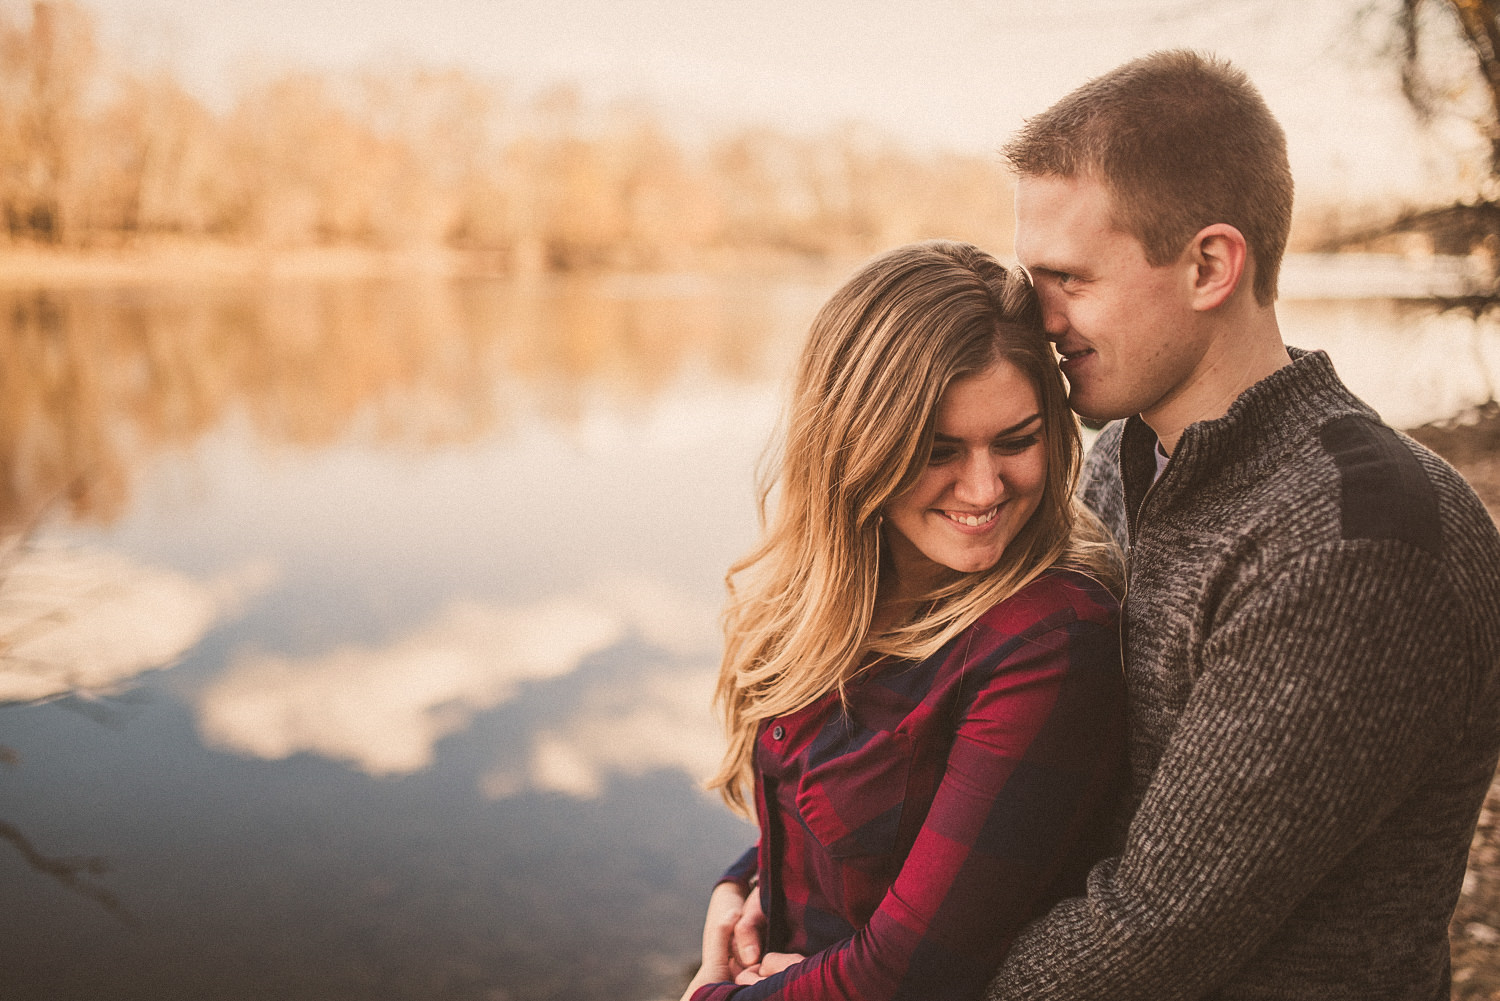 Johnson Park Downtown Grand Rapids Engagement  - 46.jpg